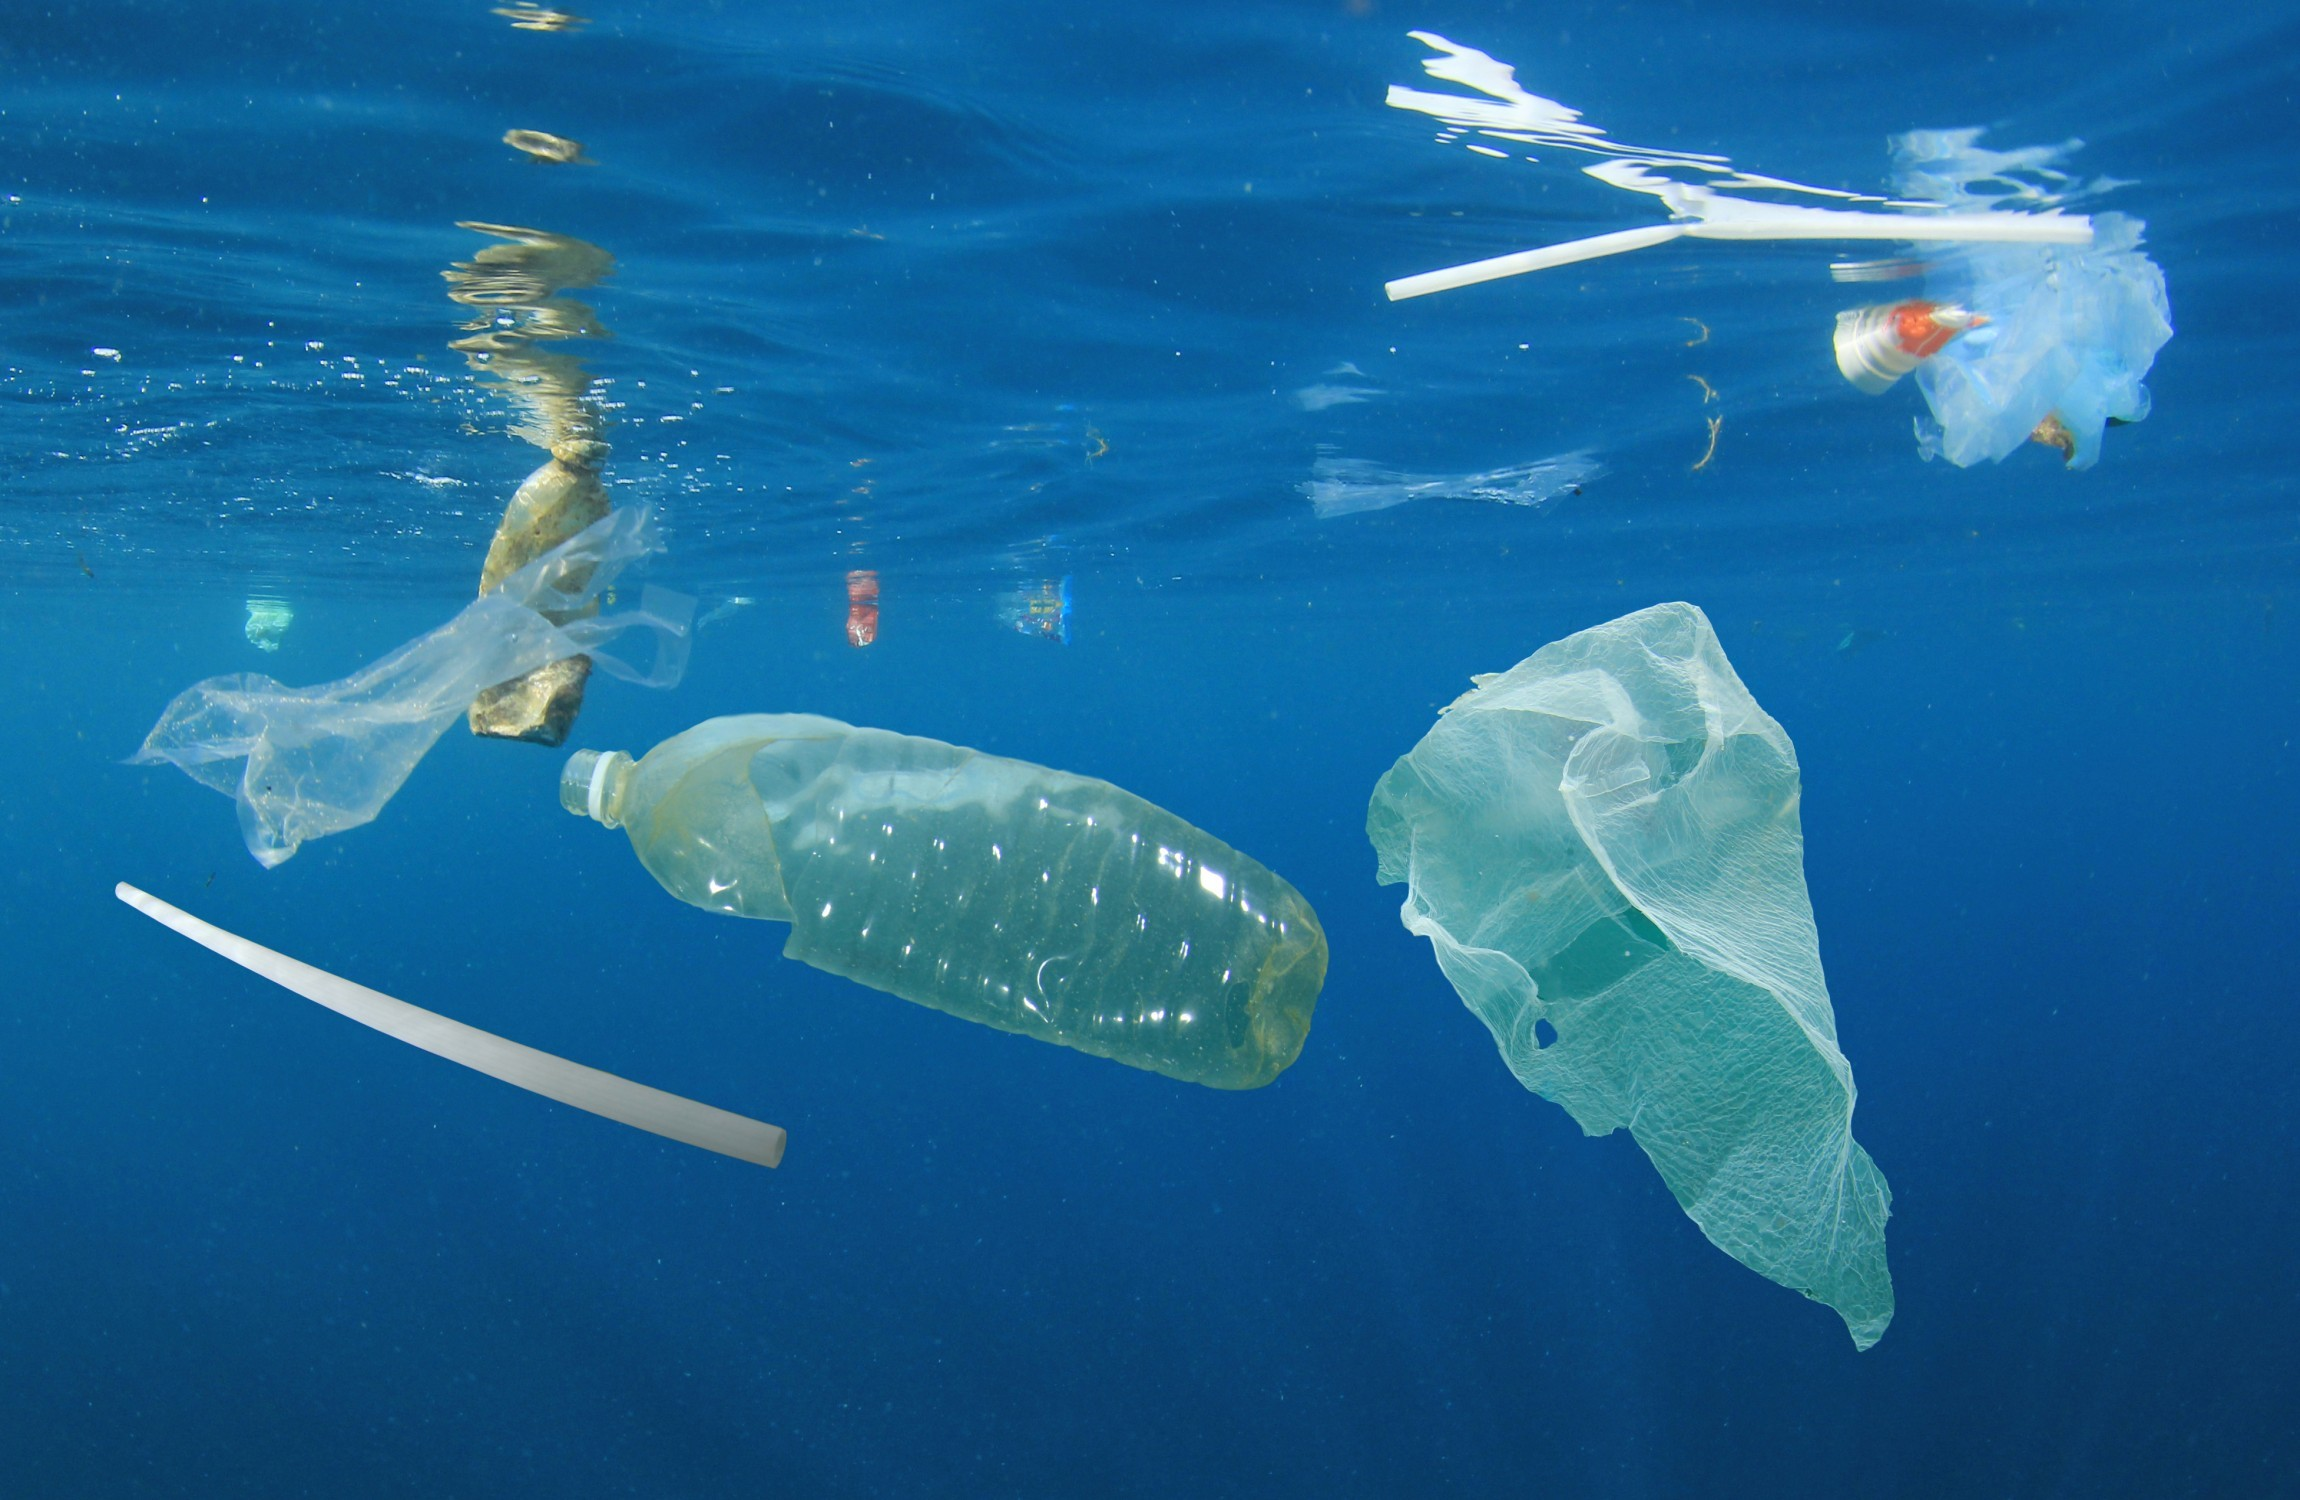 Ocean plastic levels ten times higher than previously thought, study finds